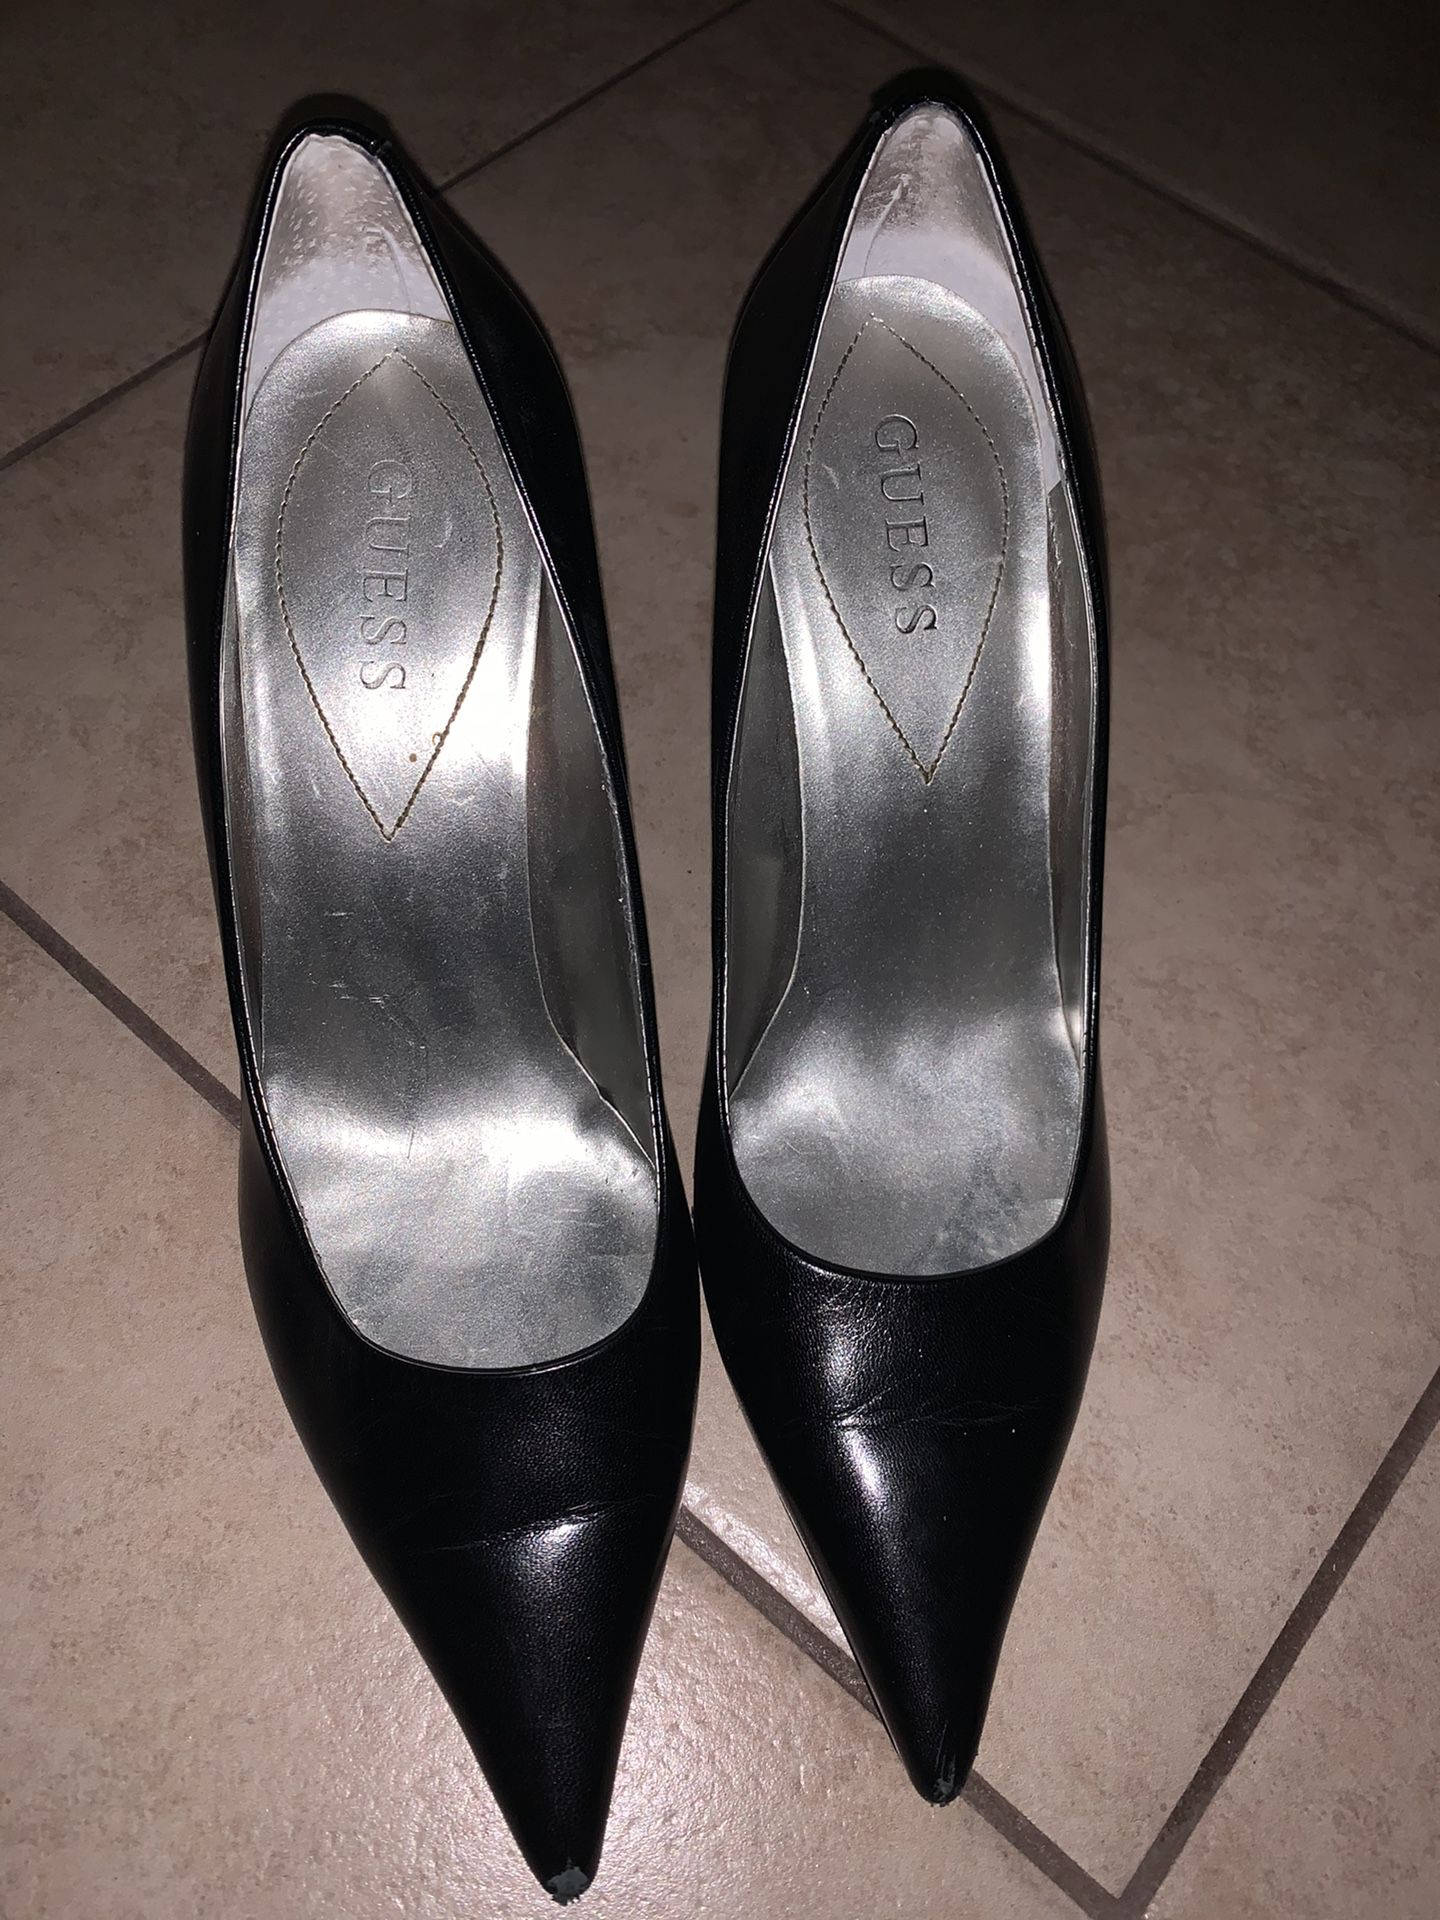 Guess black point shoes